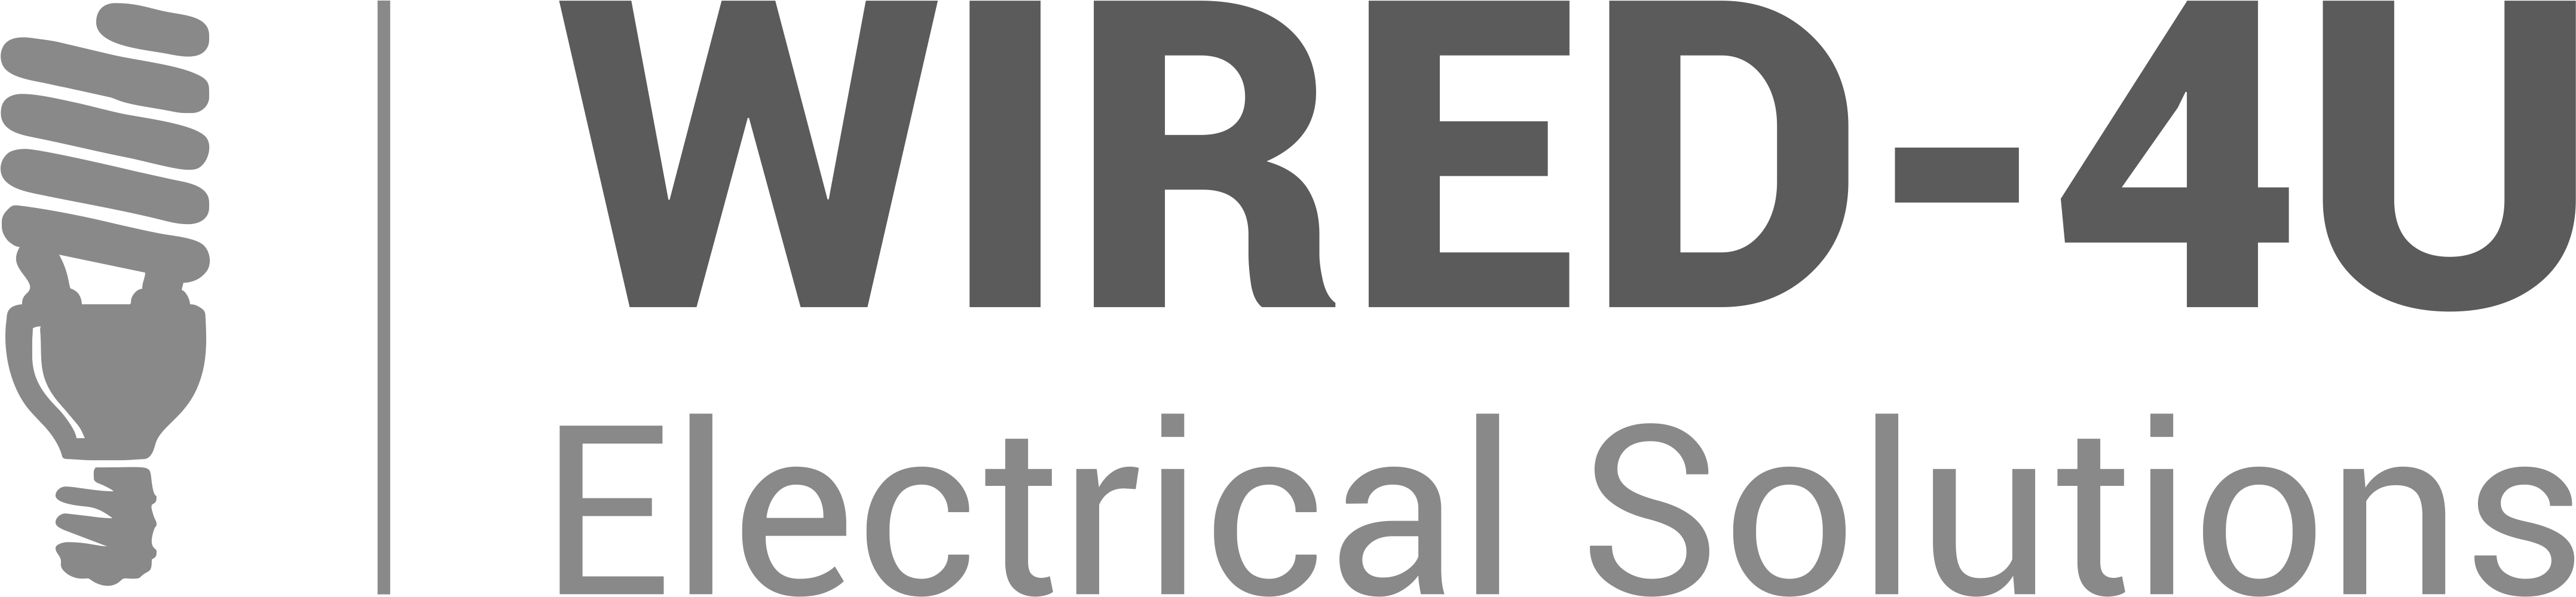 Wired-4U, Local Electrician London